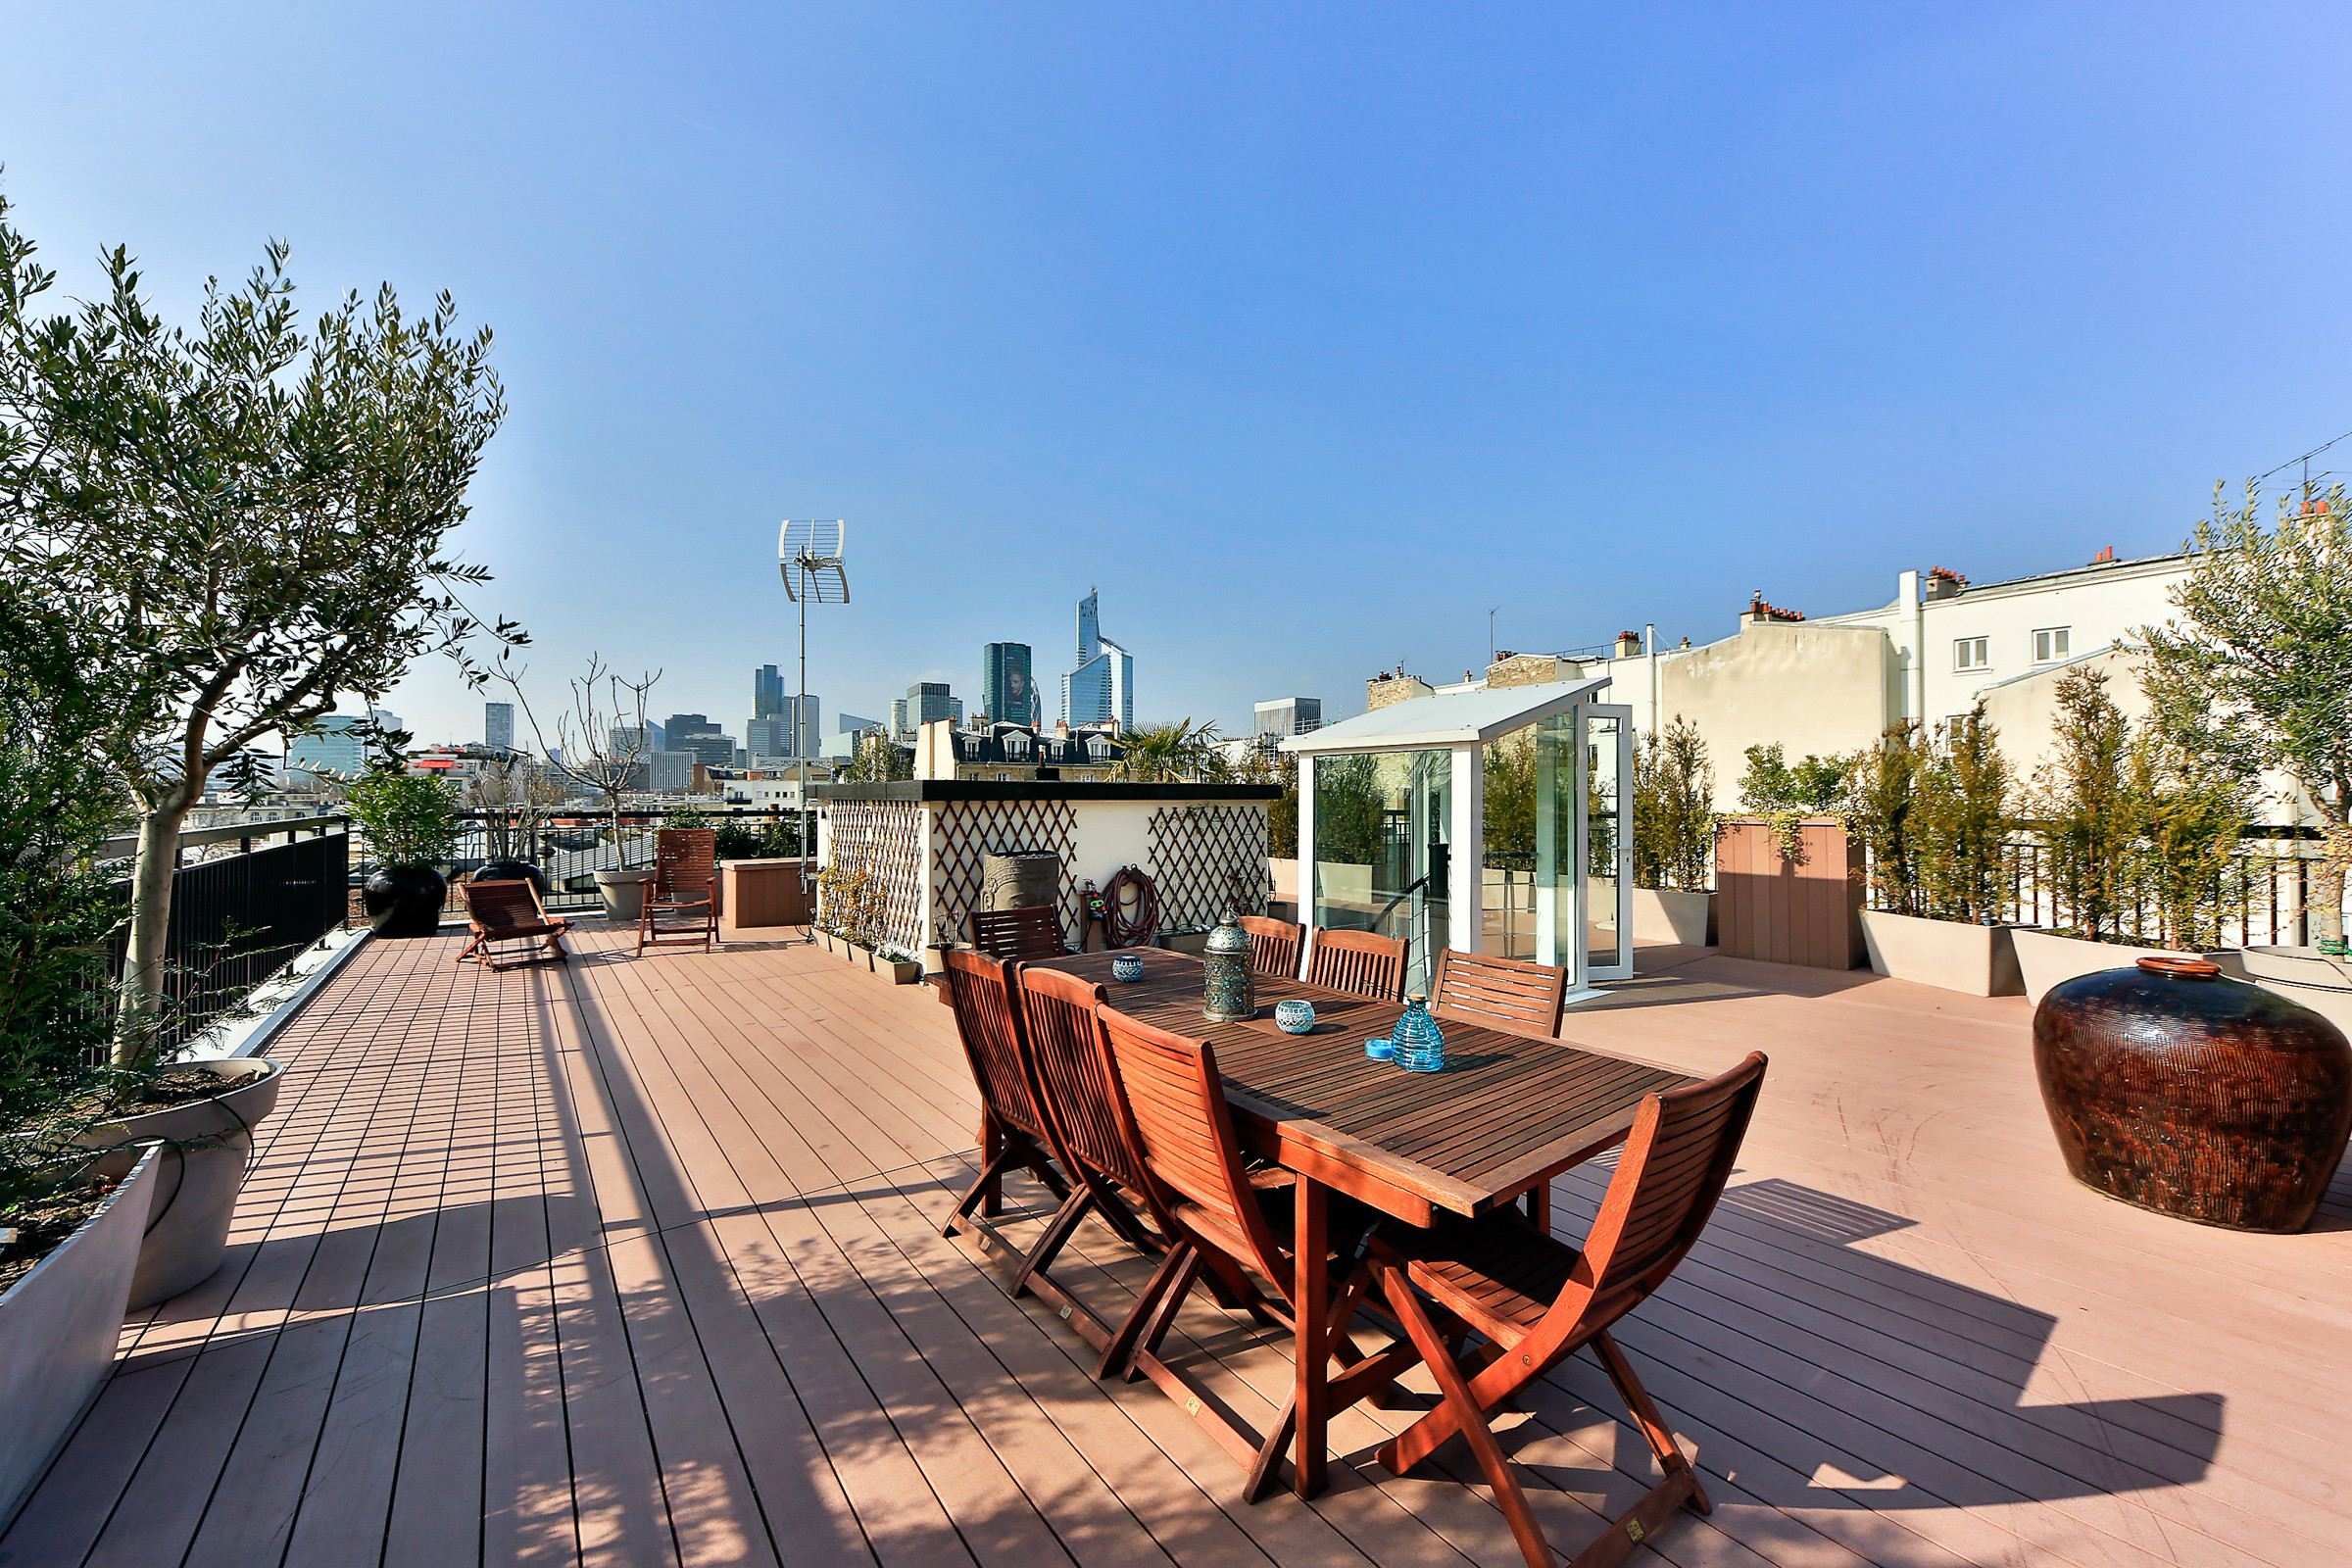 Apartment for Sale at Apartment - Penthouse Villa Madrid Other France, Other Areas In France 92200 France